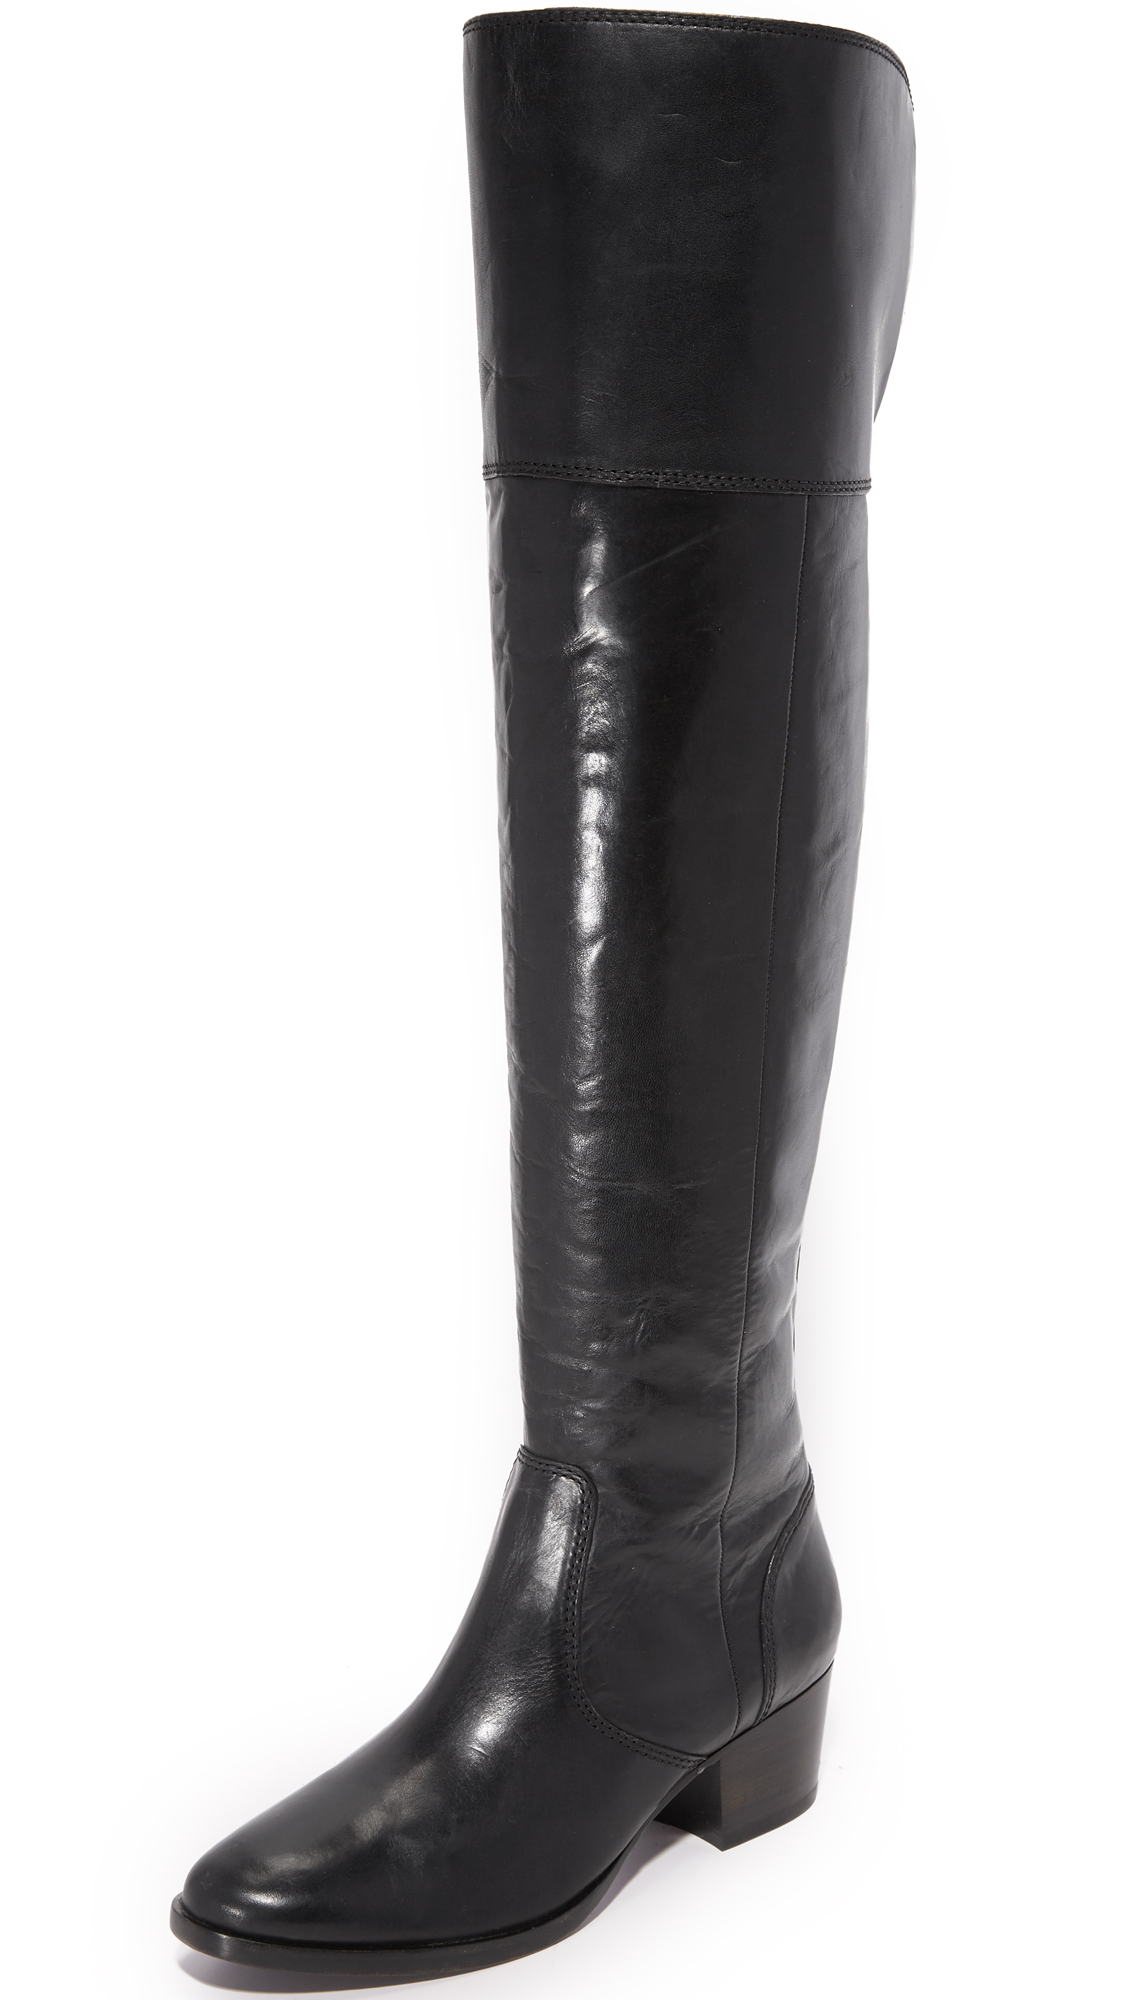 Frye Clara Over The Knee Boots - Black